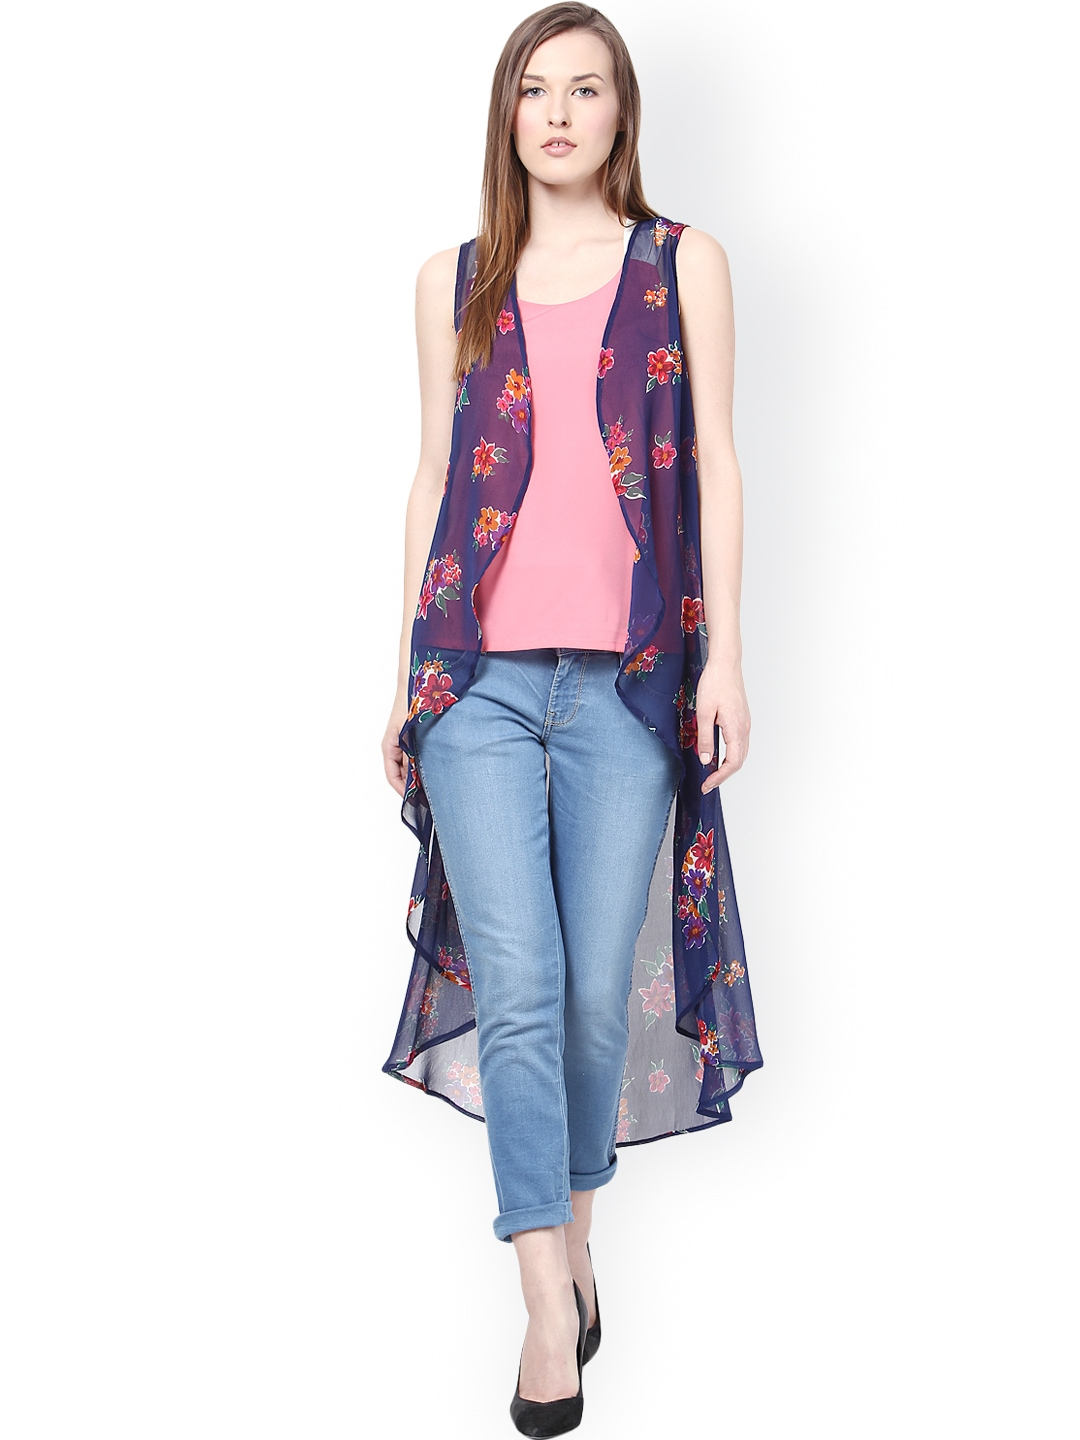 Myntra Harpa Blue Printed Long Shrug 865591